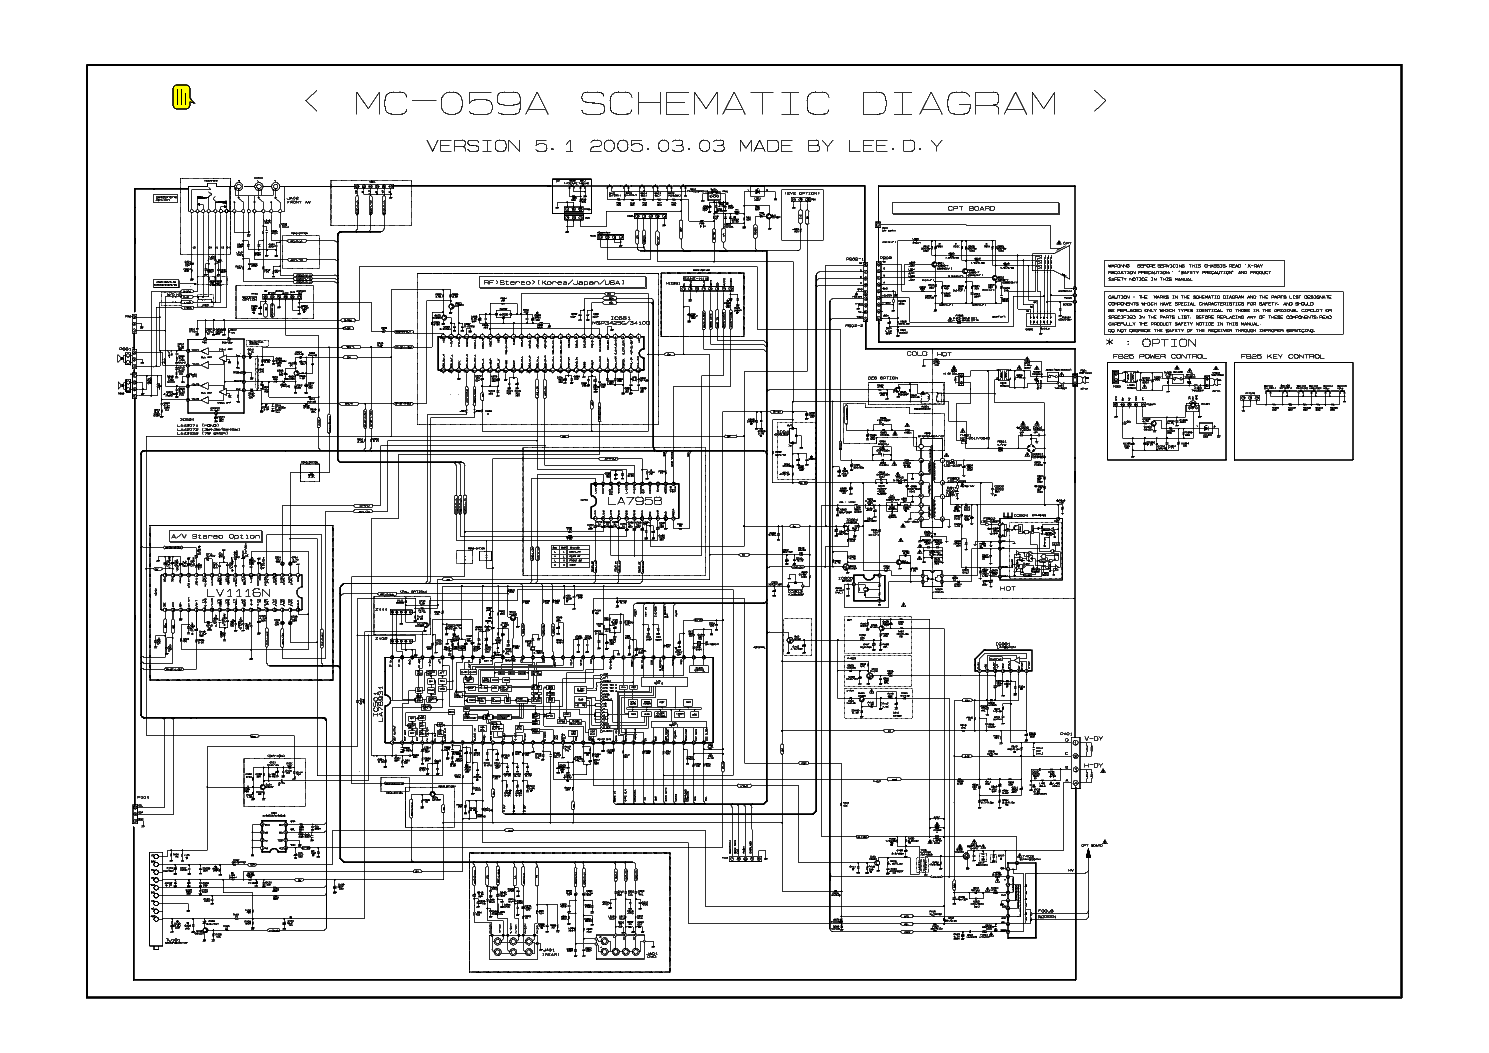 Wiring Diagram Lg Tv Good Guide Of 1967 Ford Galaxie For Diagrams Schematic 42lv5400 Get Free Image Maytag Washer Dryer